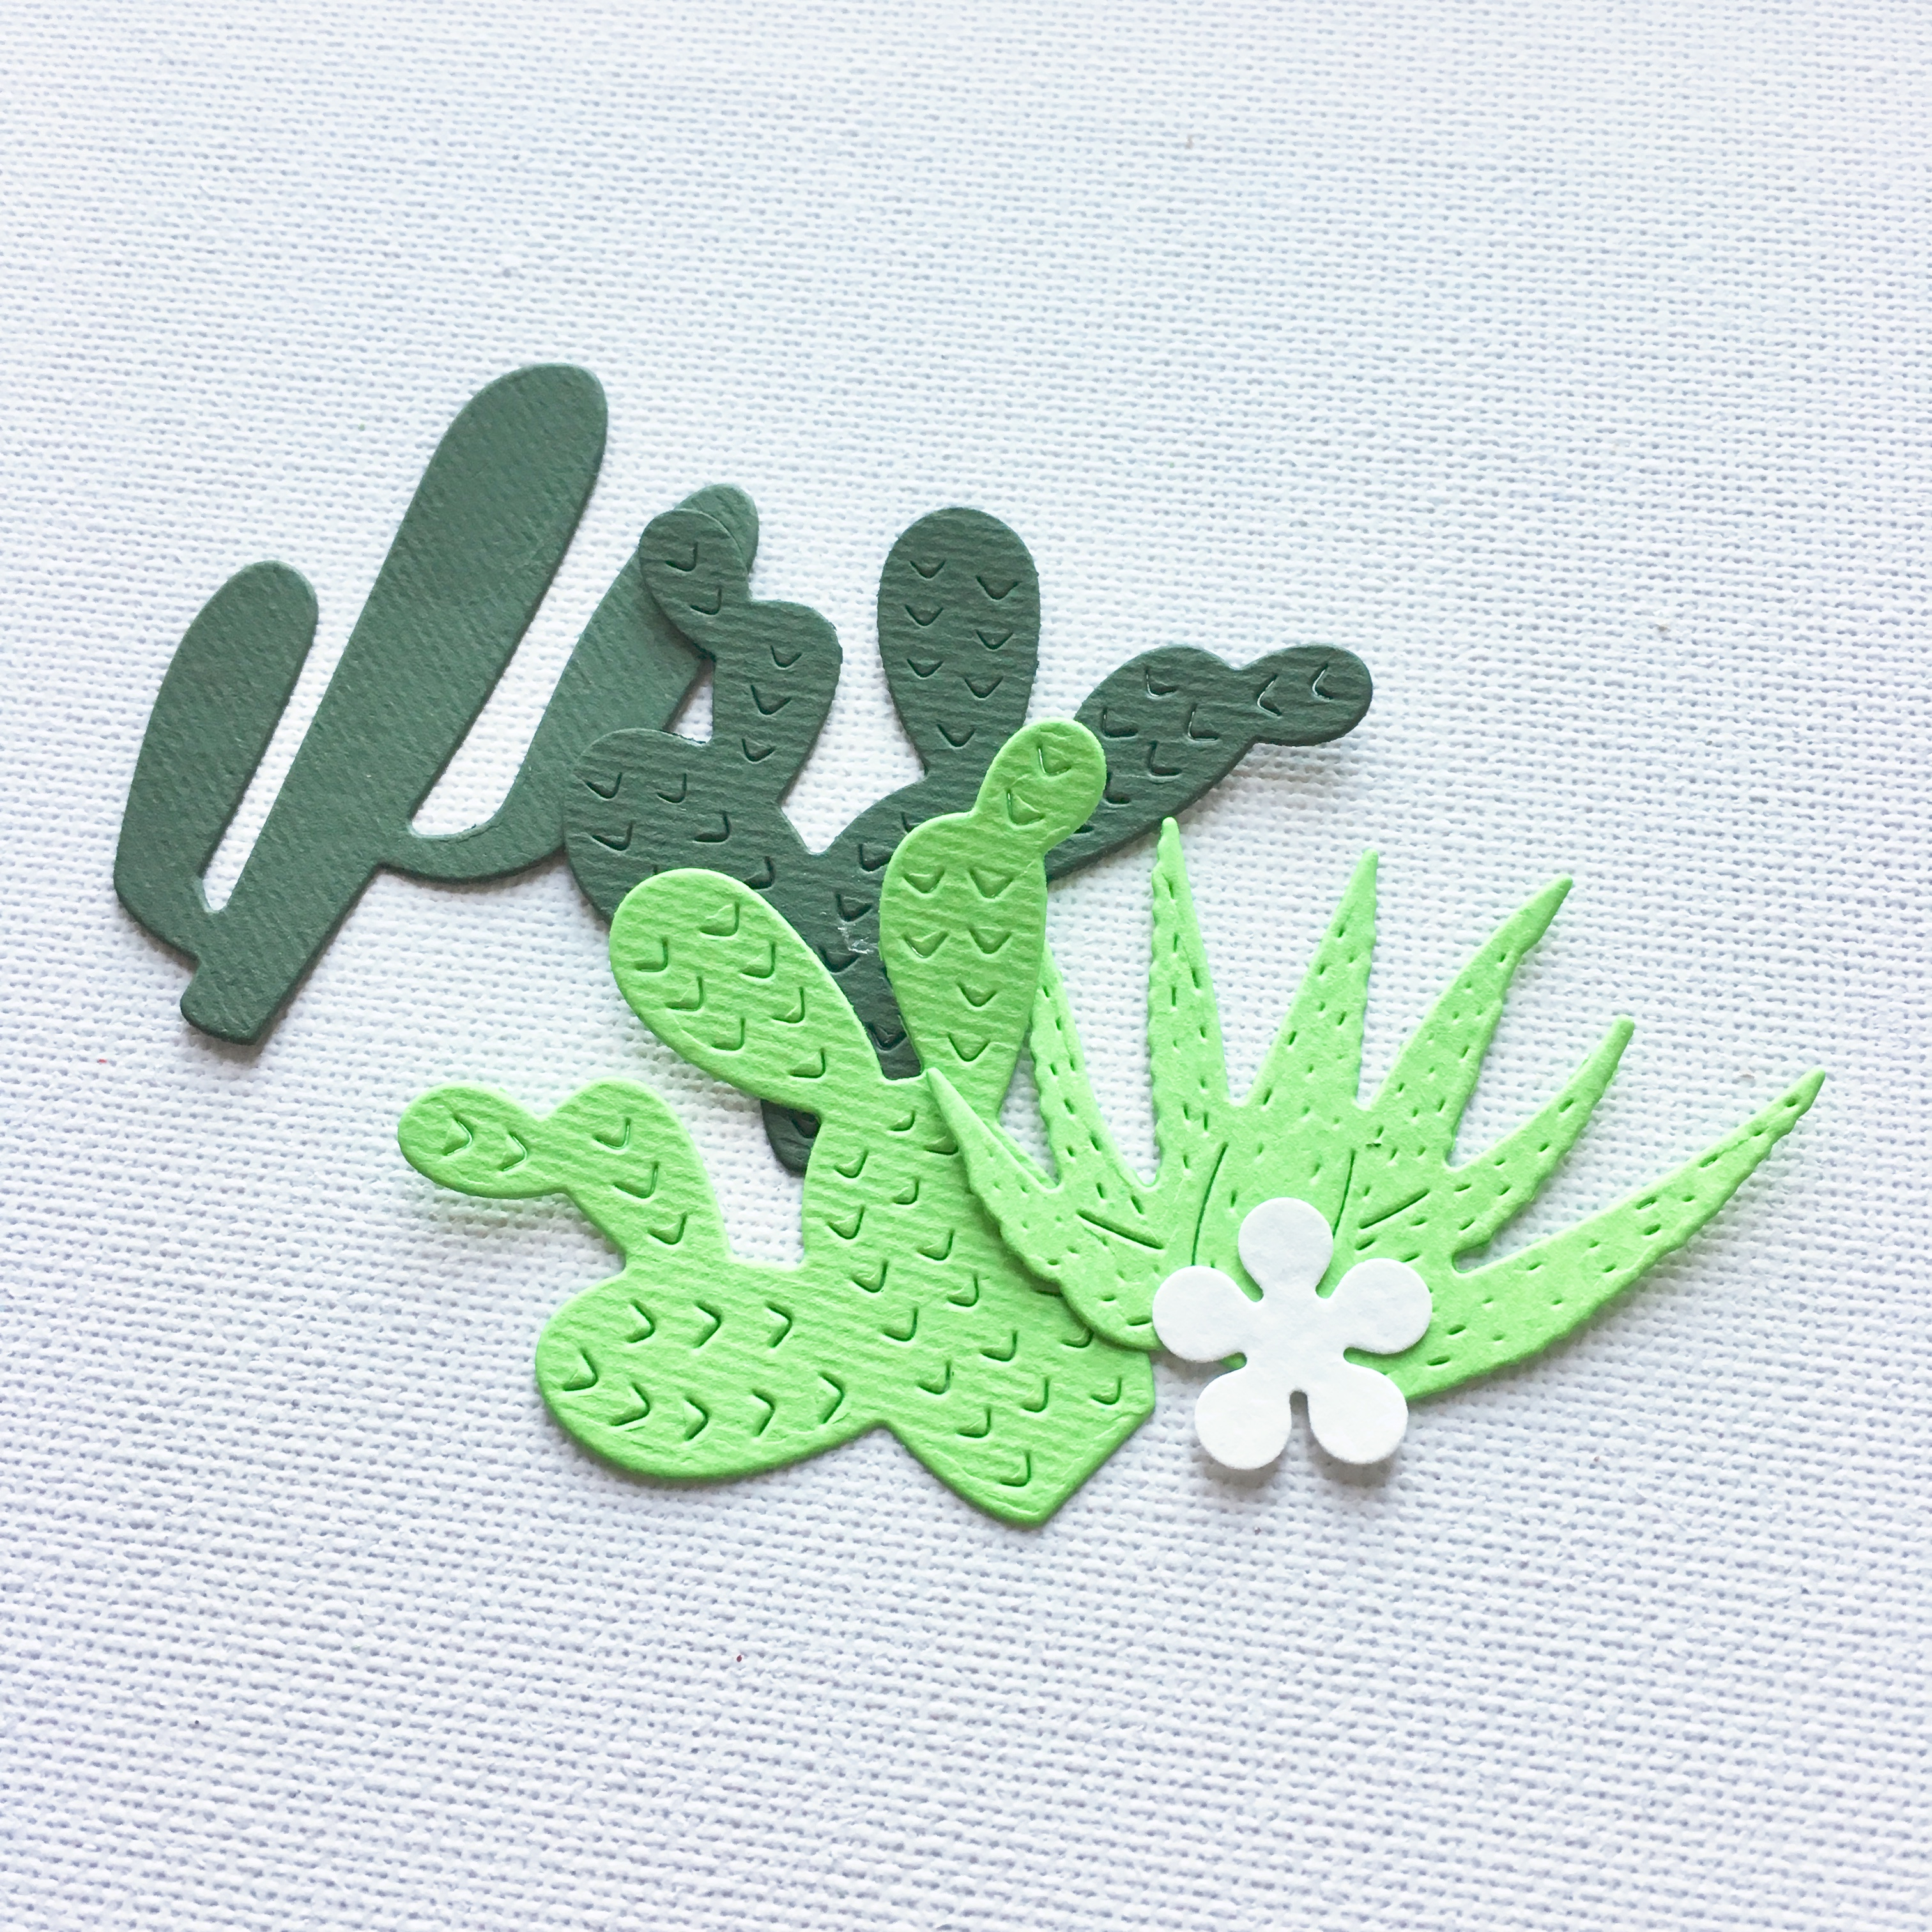 cactus shapes - dark green and light green paper